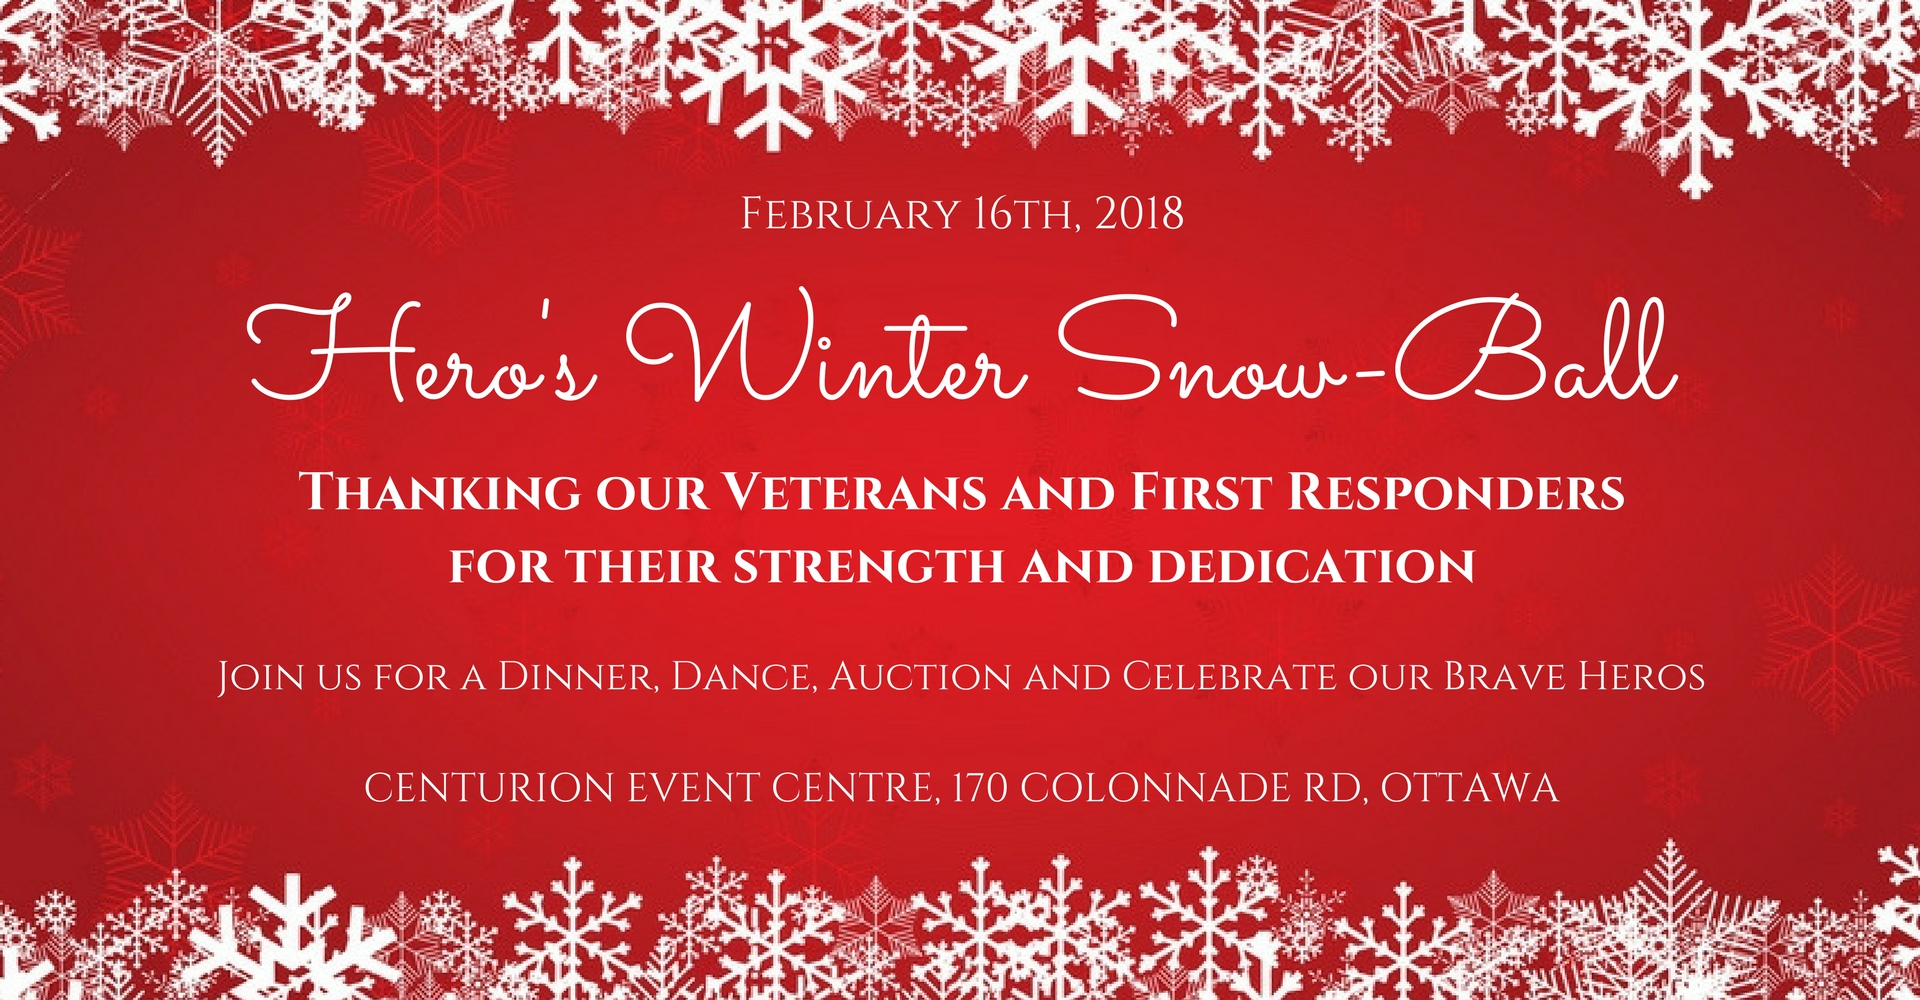 Hero's Winter Snow-Ball   On Friday, February 16th, 2018 we enjoyed our first event supporting wounded warriors which included our veterans and first responders. The evening was capped of with great dancing, amazing food and a beautiful silent auction in support of wounded warriors. We would like to thank everyone who attended and a special thank you to our supporting sponsors.